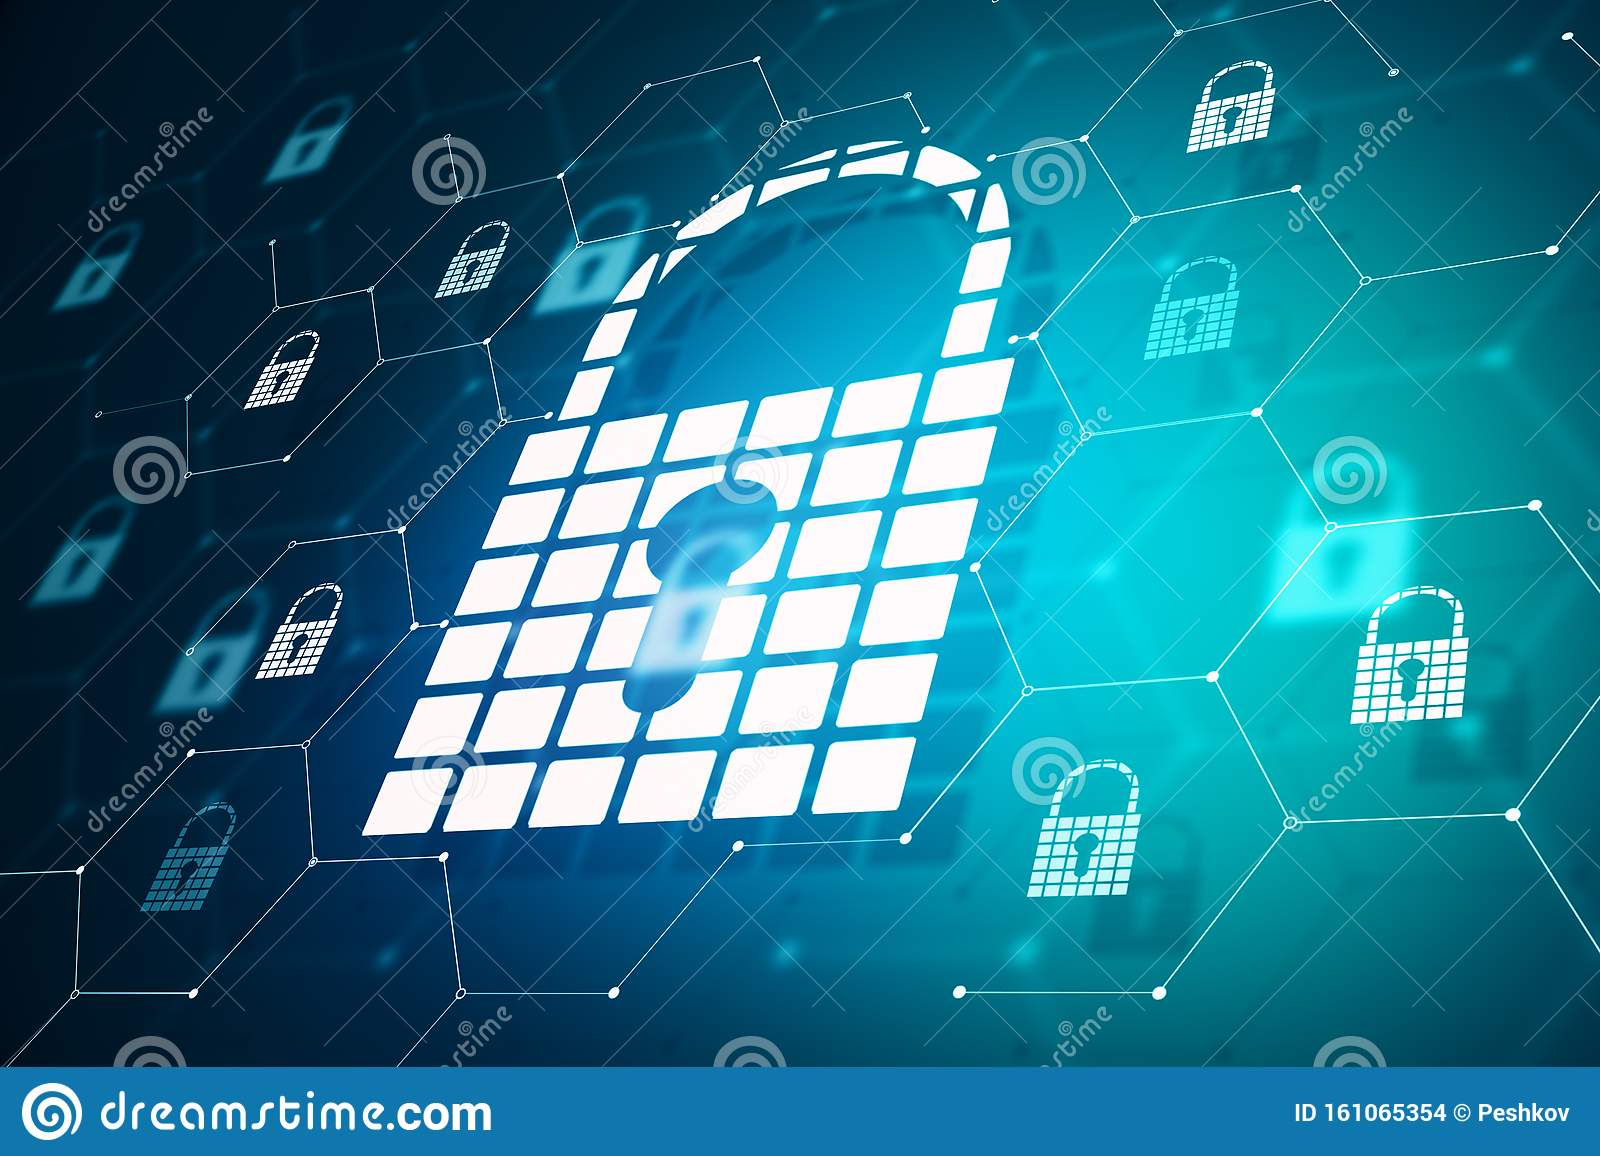 Login And Protection Padlock Wallpaper Stock Illustration